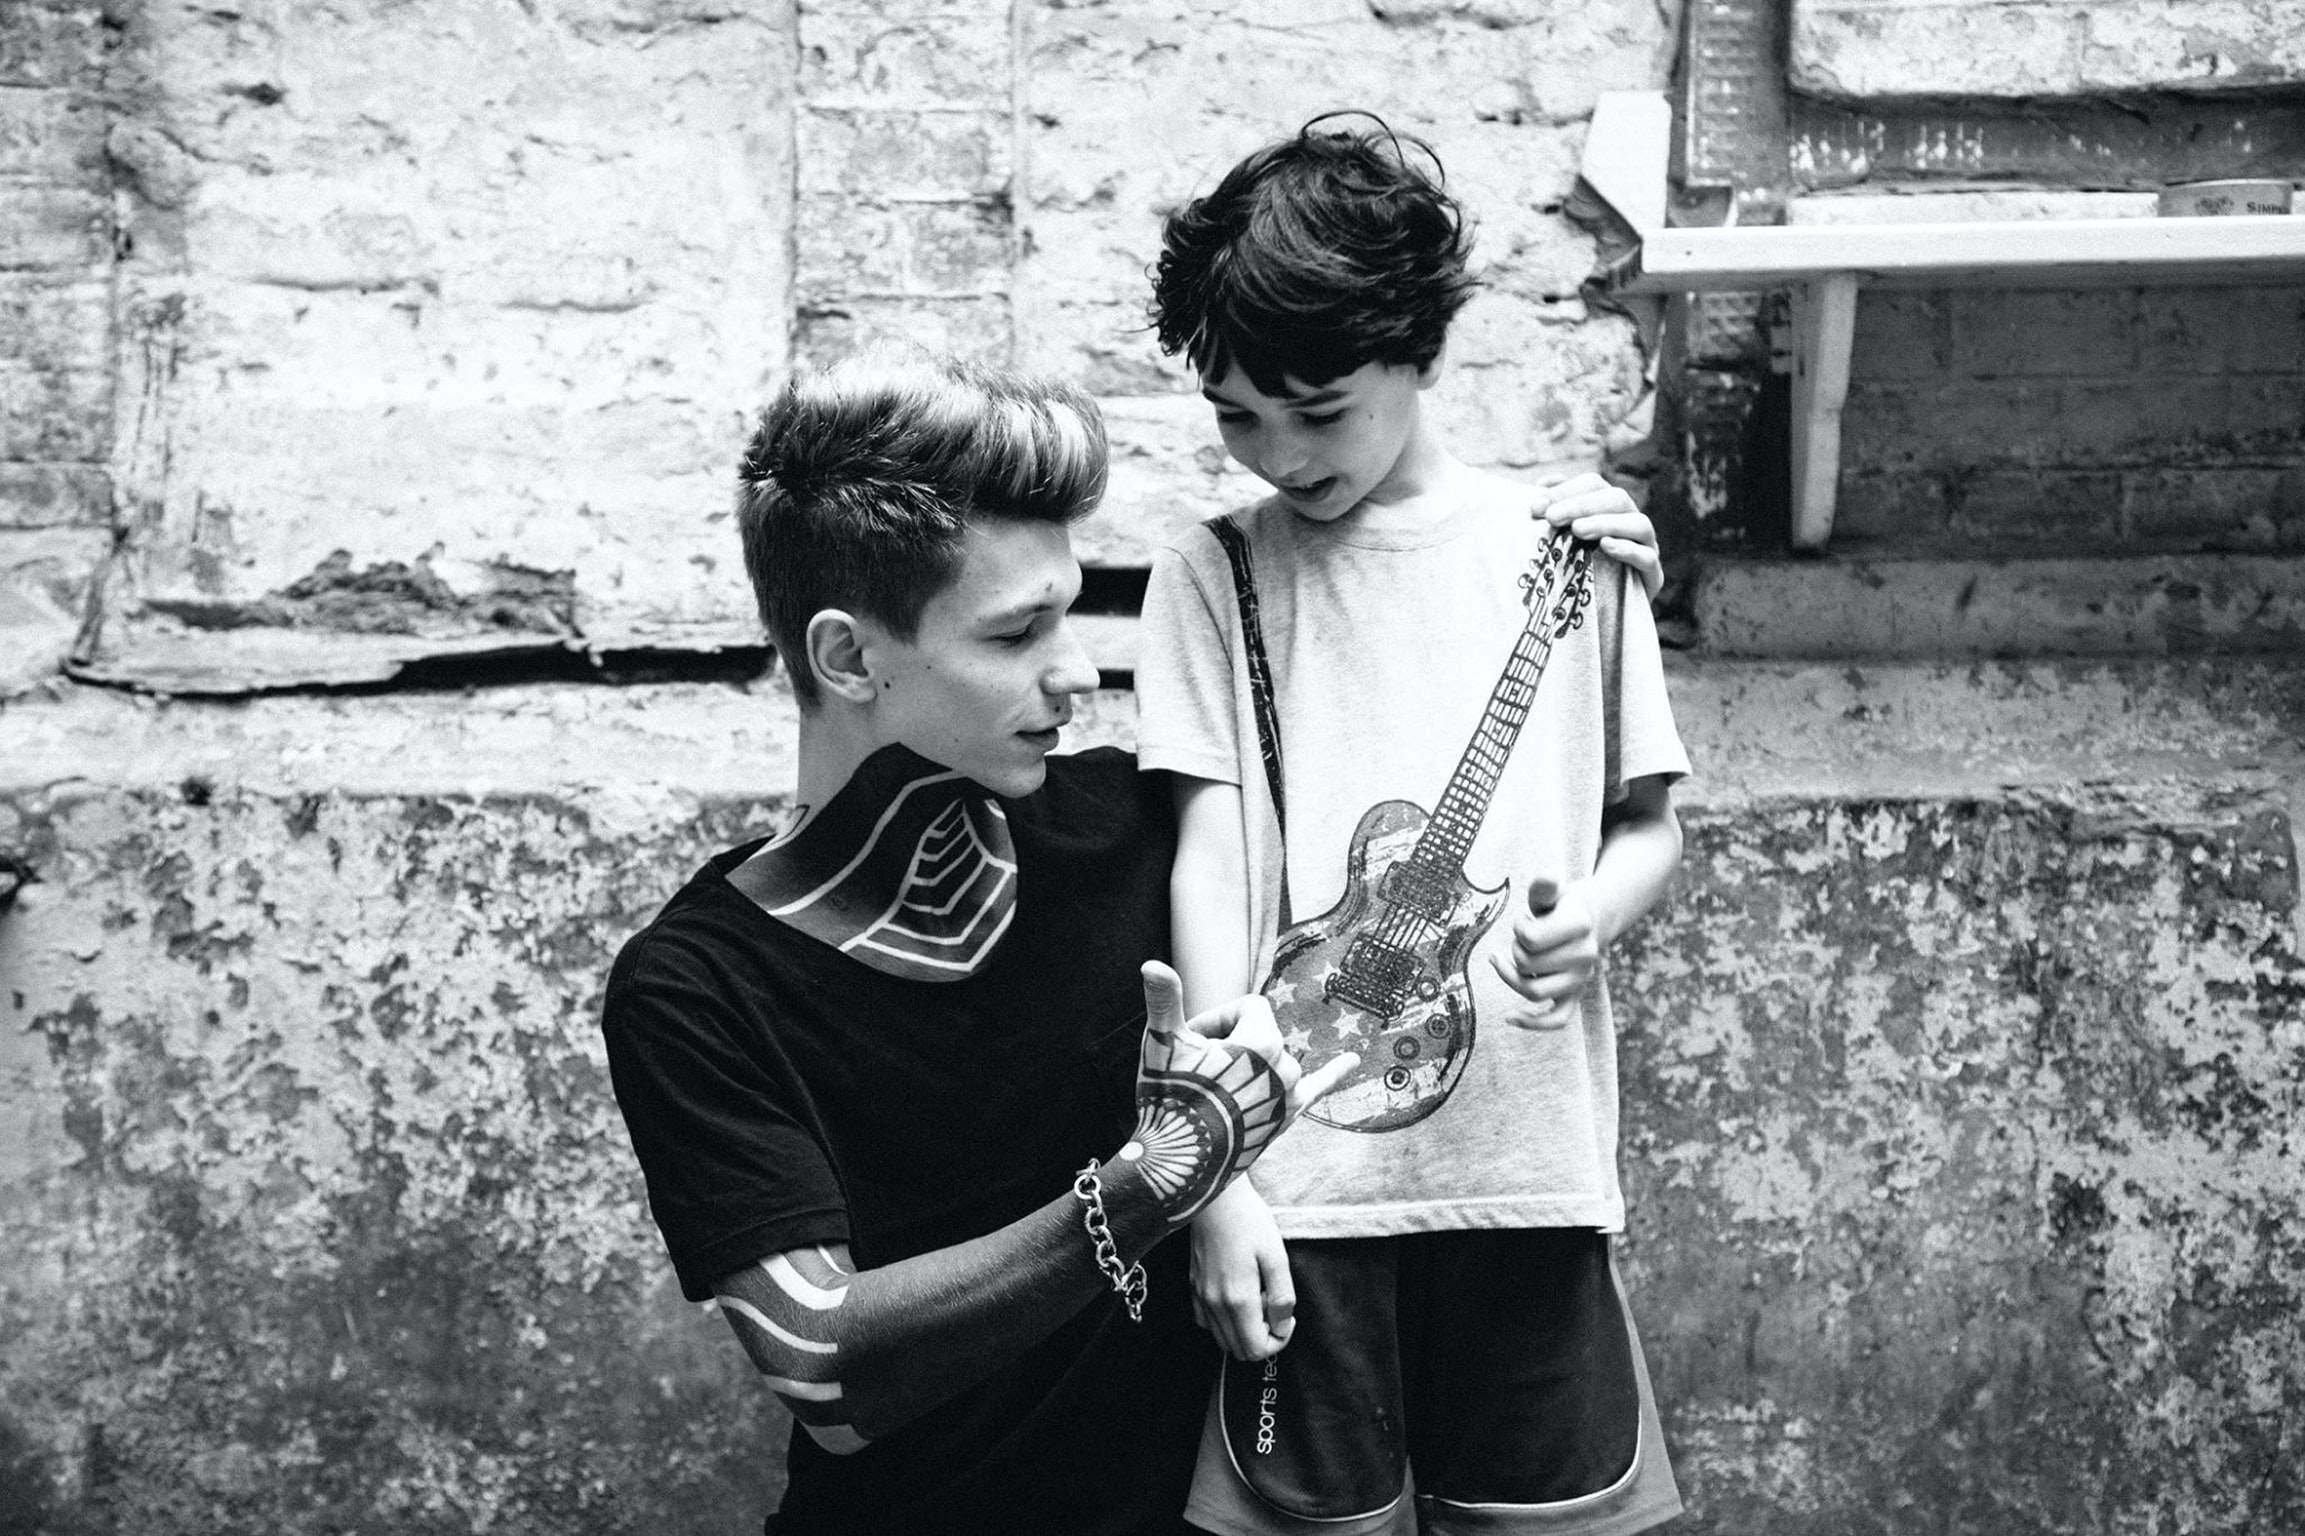 man and boy looking on guitar in grayscale photo